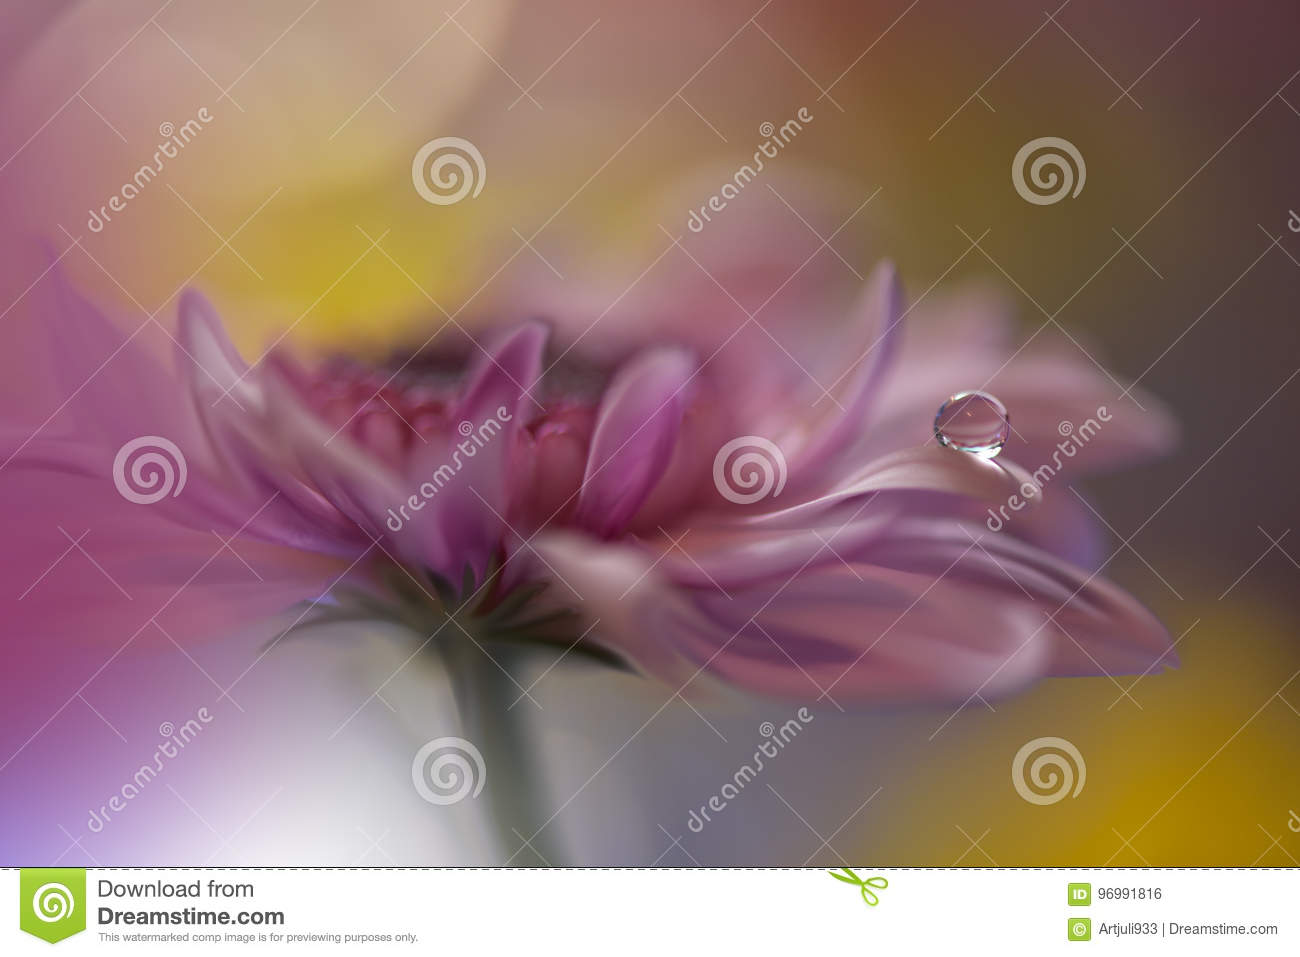 Drop on yellow background closeup.Tranquil abstract closeup art photography.Print for Wallpaper...Floral fantasy design...